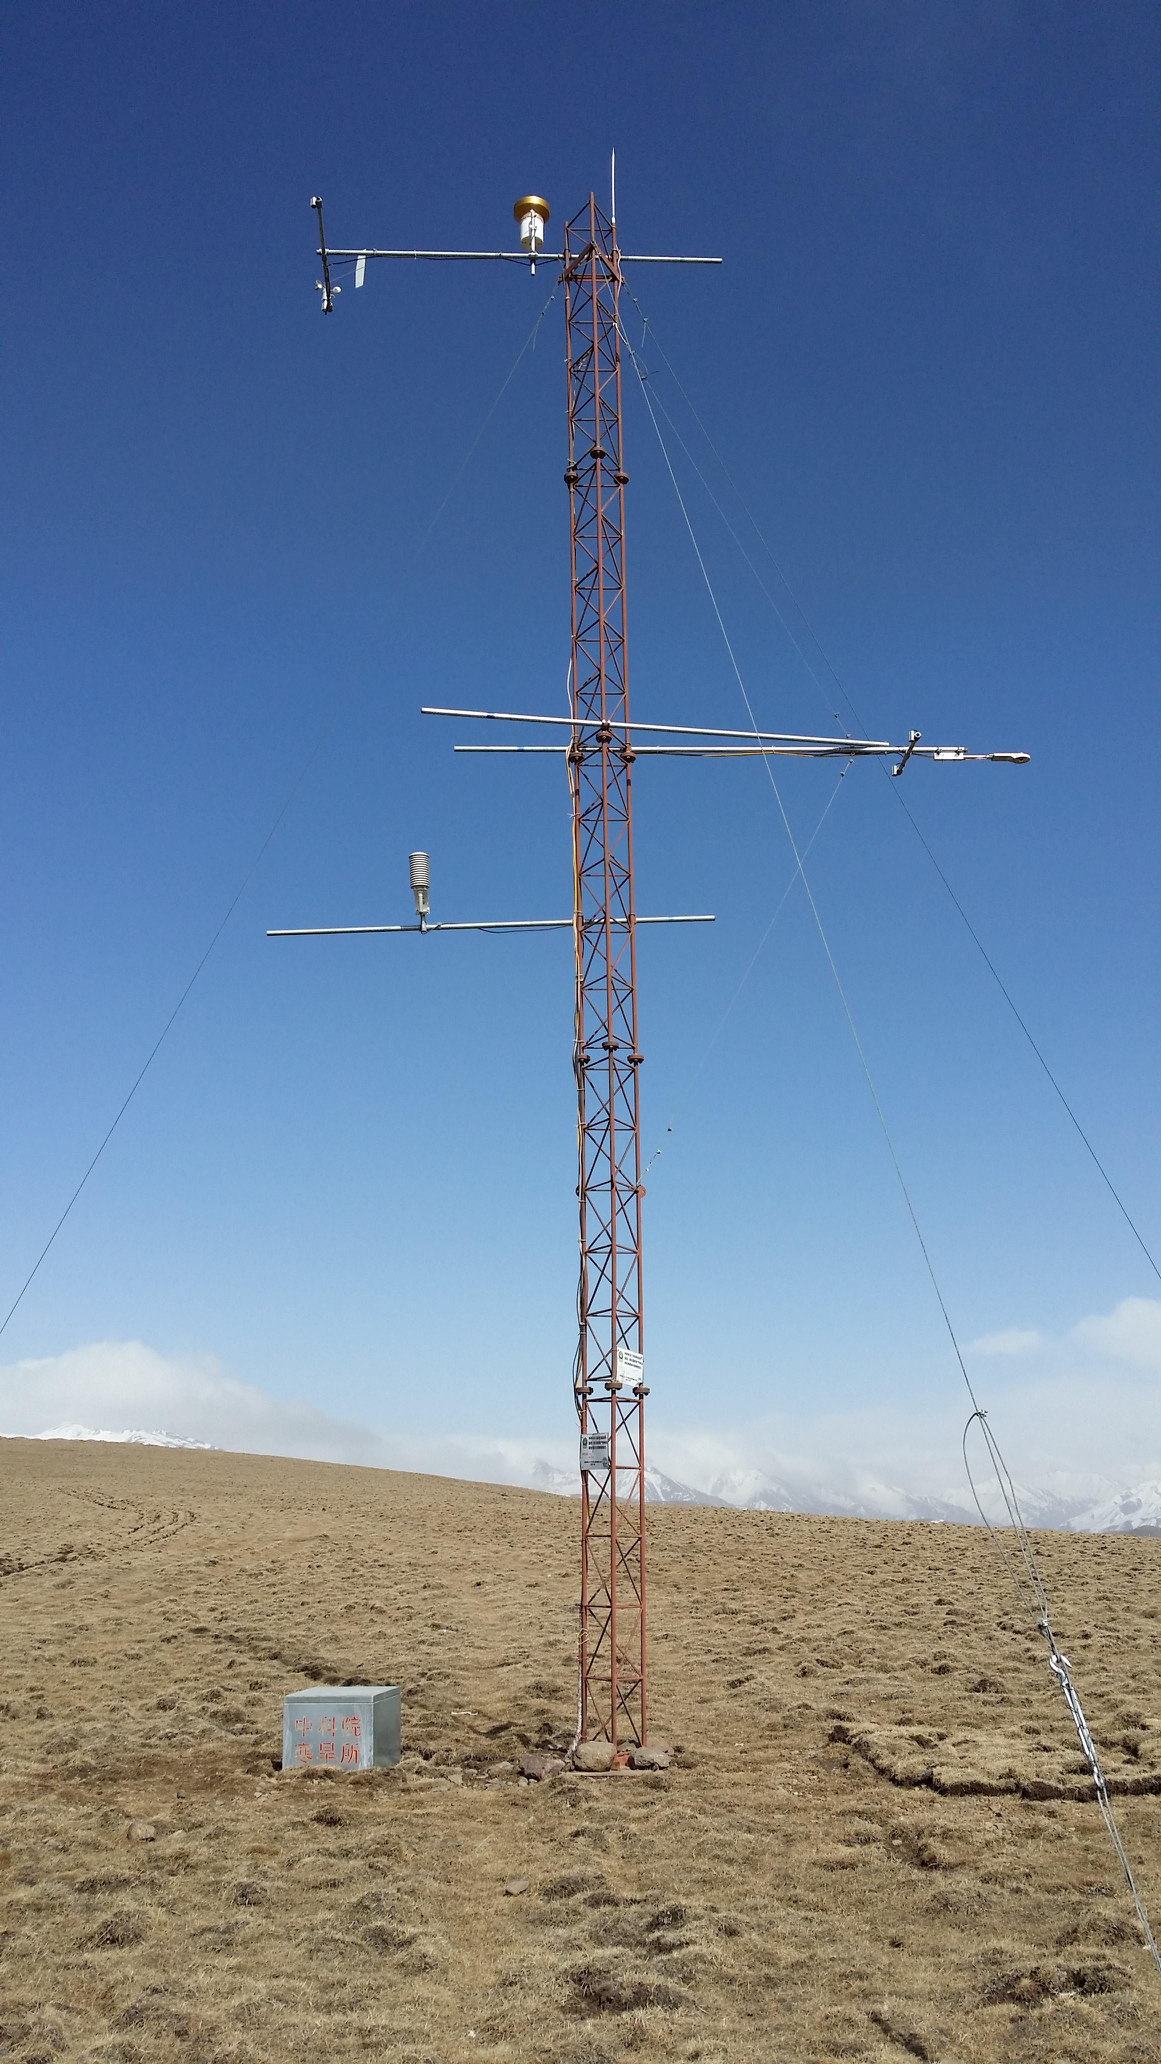 Qilian Mountains integrated observatory network: Dataset of the Heihe River Basin integrated observatory network (automatic weather station of Jingyangling station, 2018)